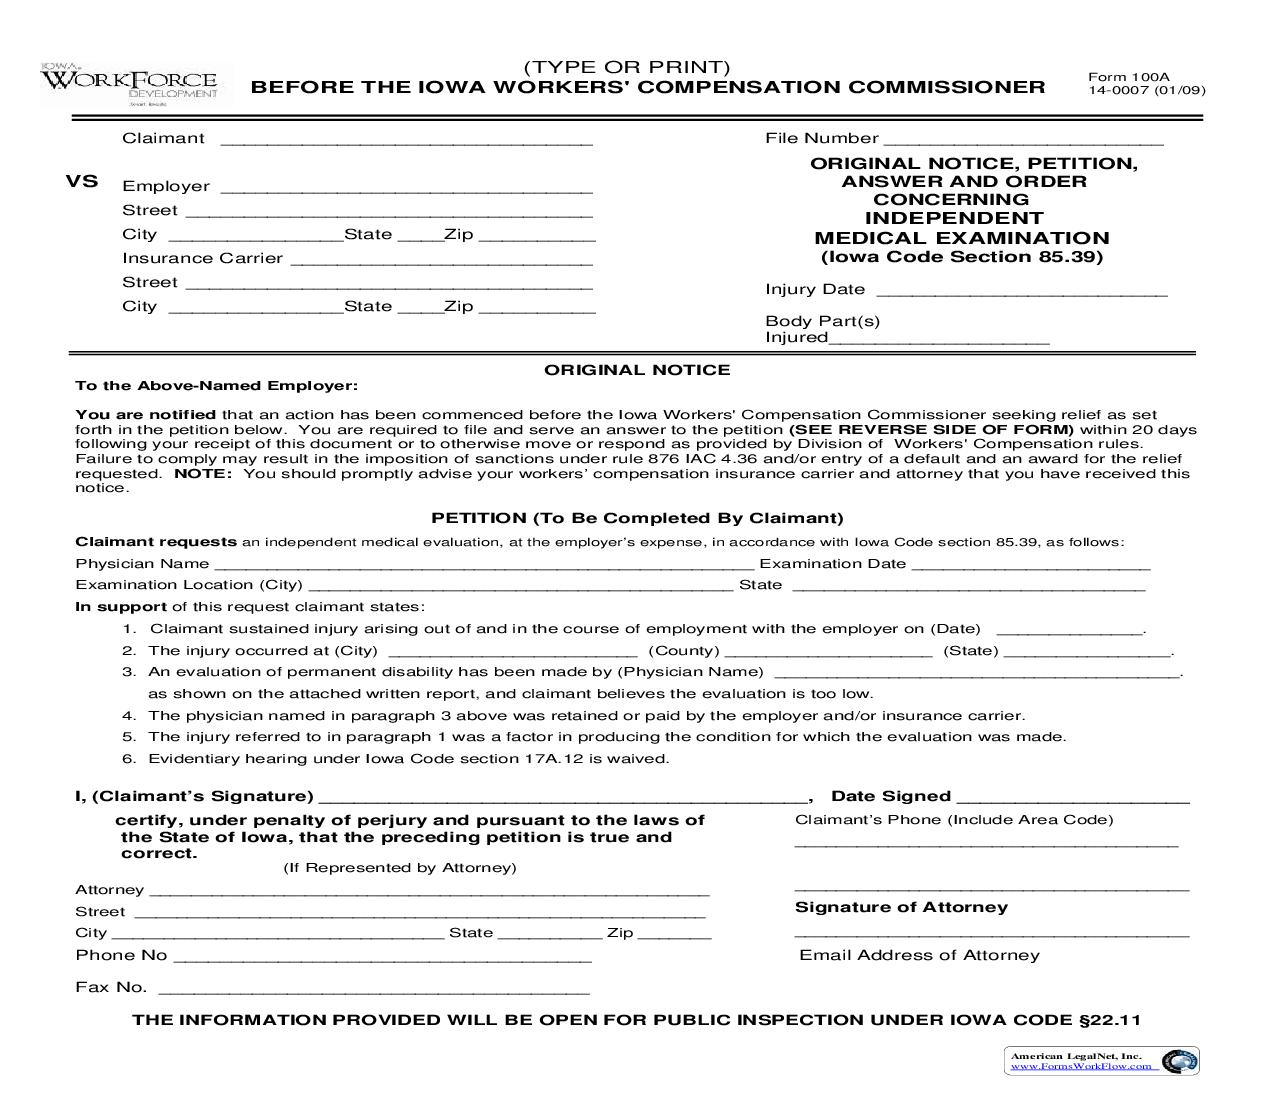 Original Notice Petition Answer And Order Concerning Independent Medical Examination {100A} | Pdf Fpdf Doc Docx | Iowa